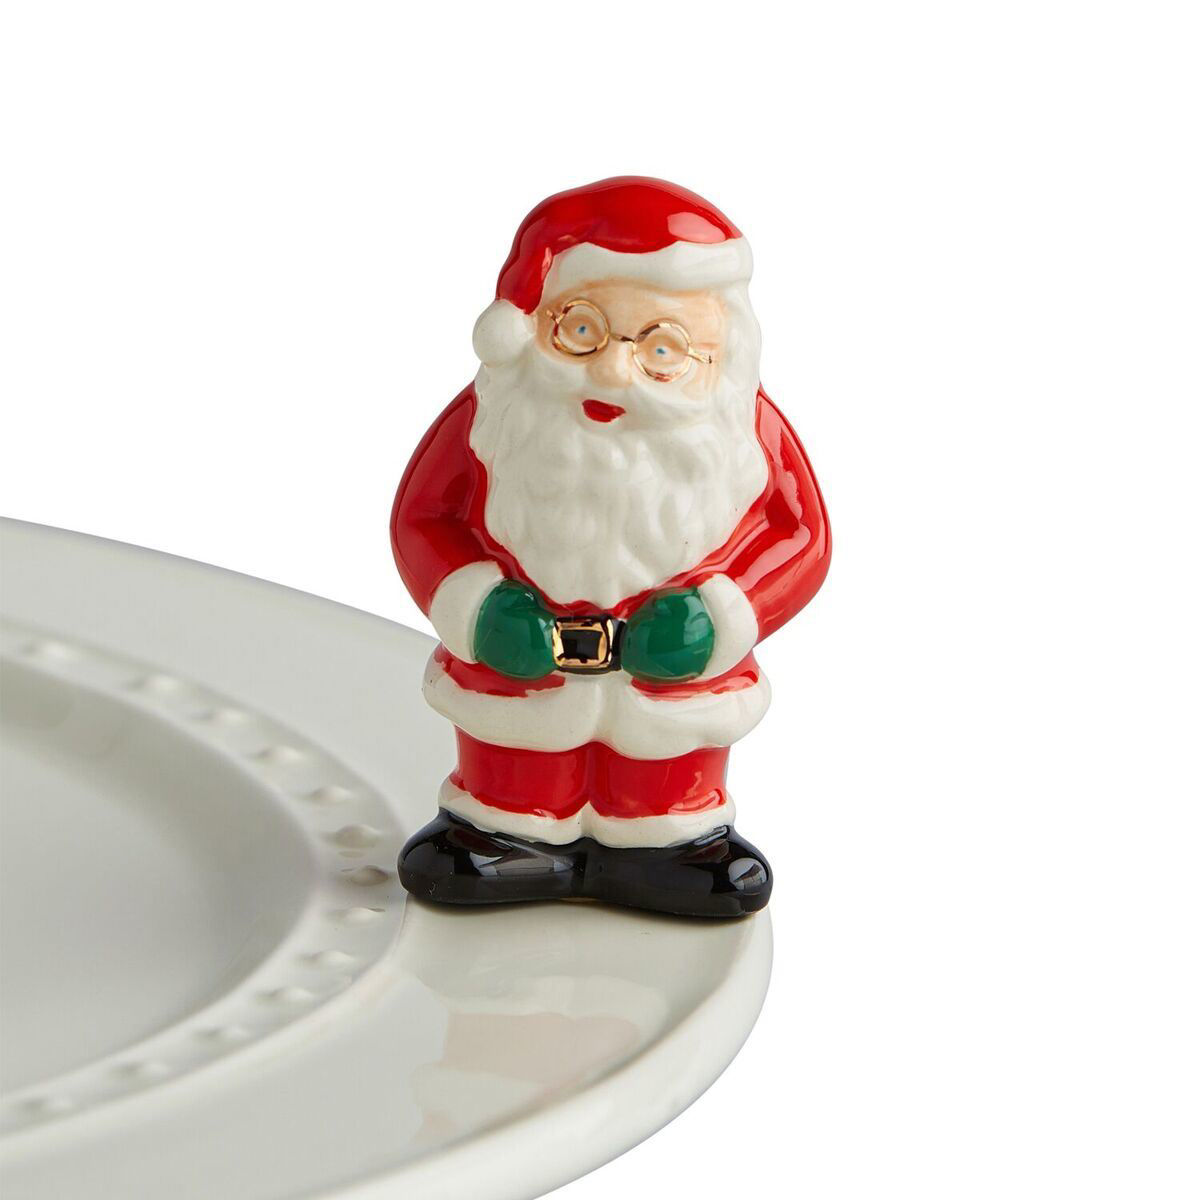 Father Christmas (Santa Claus) Mini by Nora Fleming